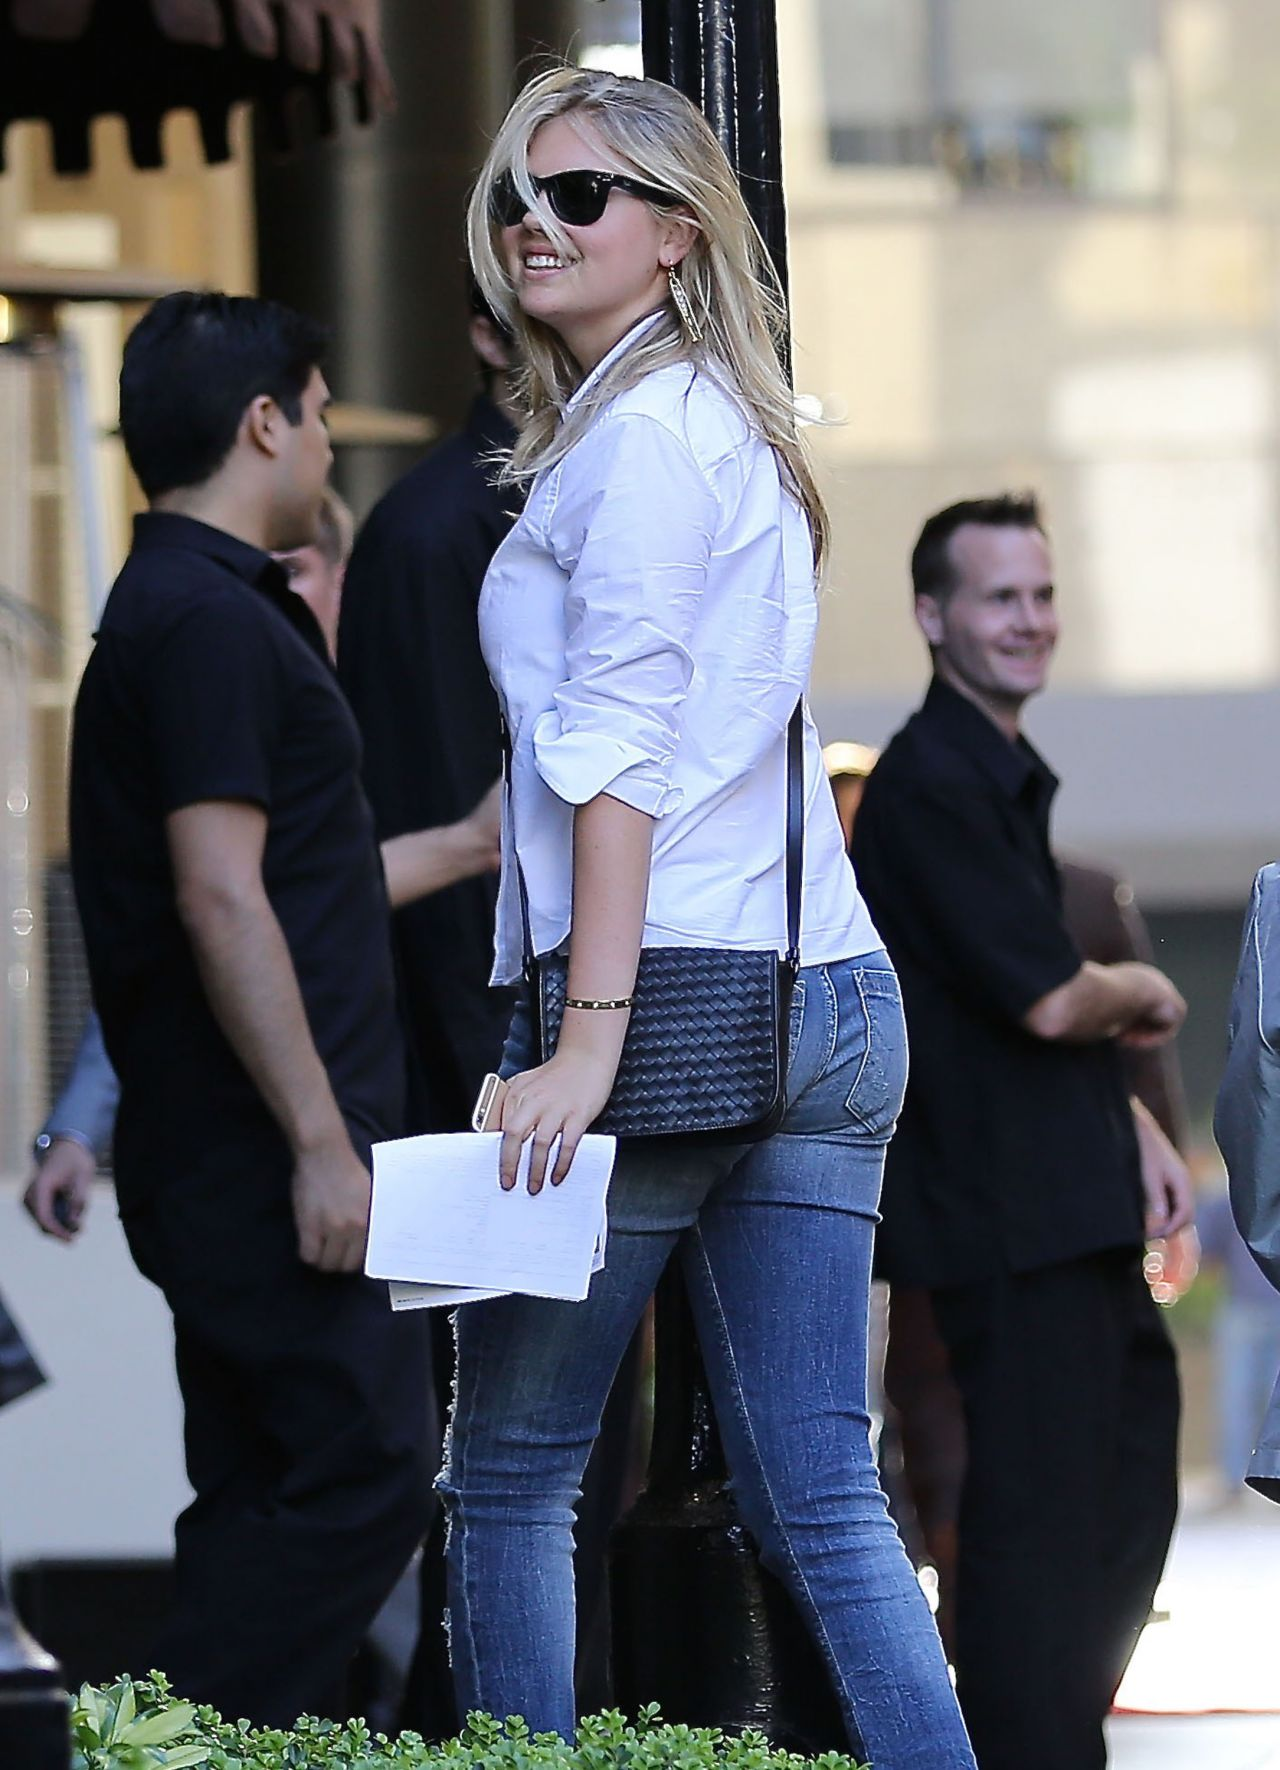 Kate upton out in beverly hills new pics